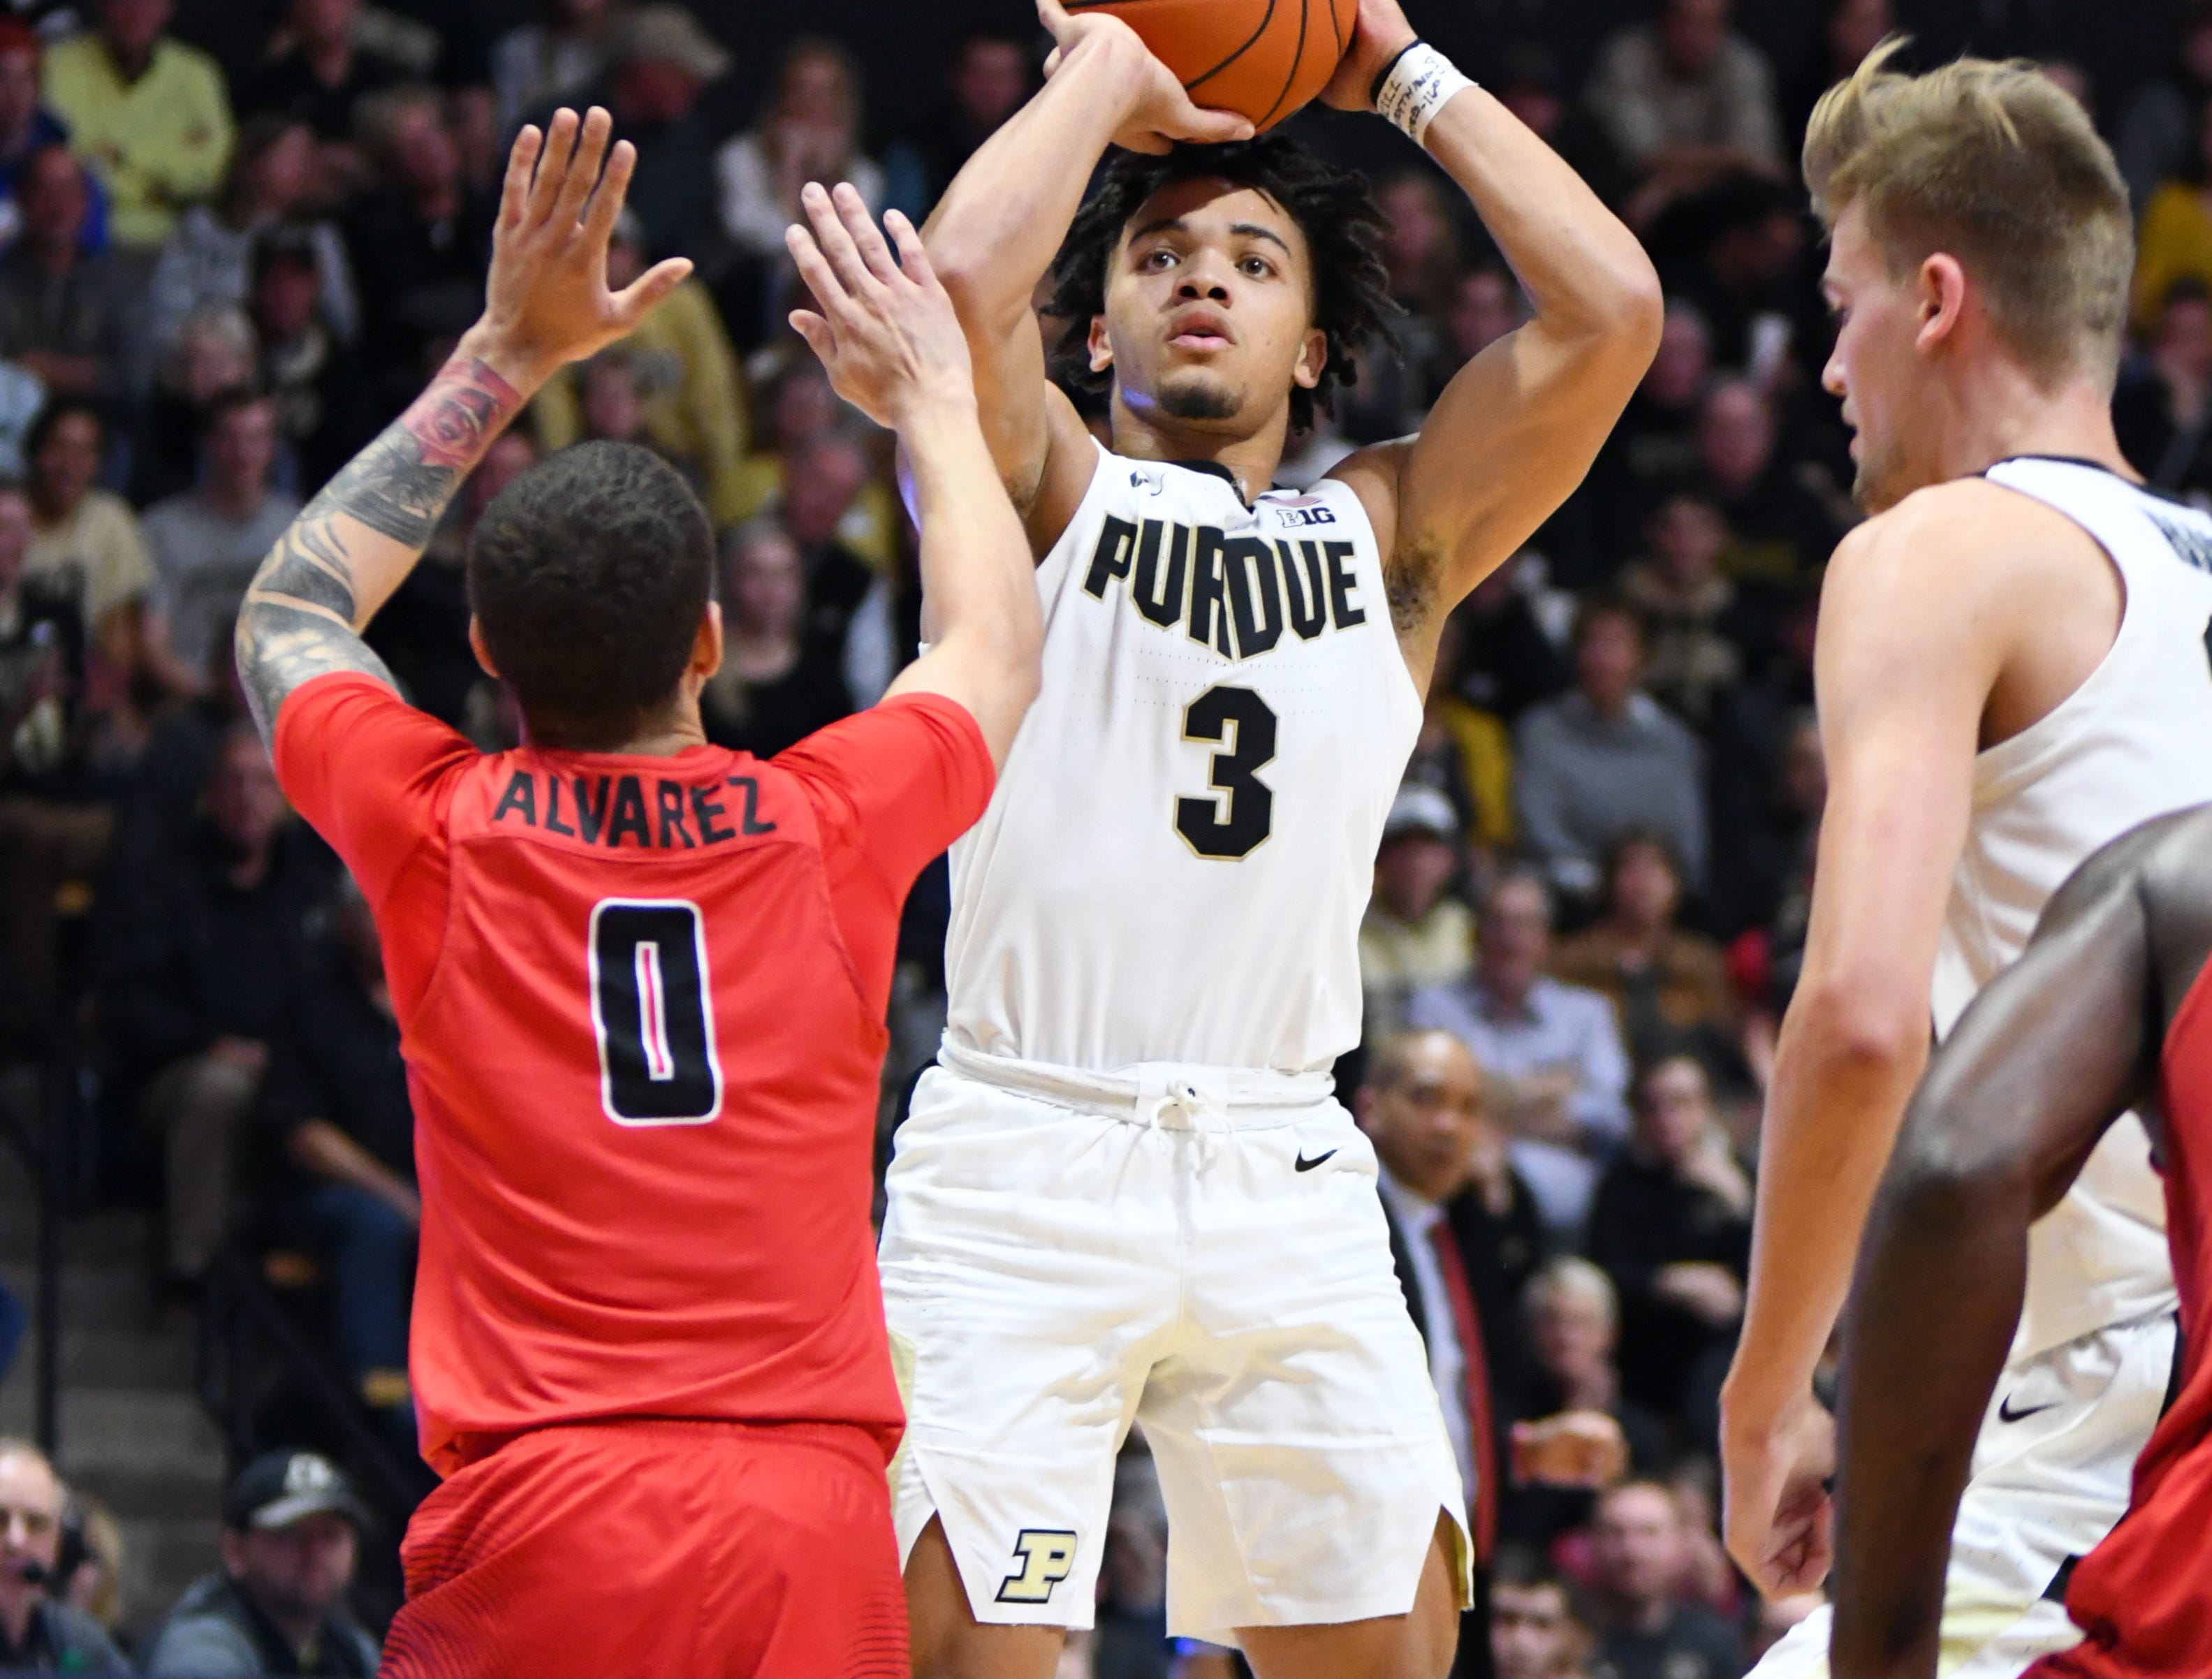 Action from Purdue's 90-57 win over Fairfield in West Lafayette on Tuesday November 11, 2018.